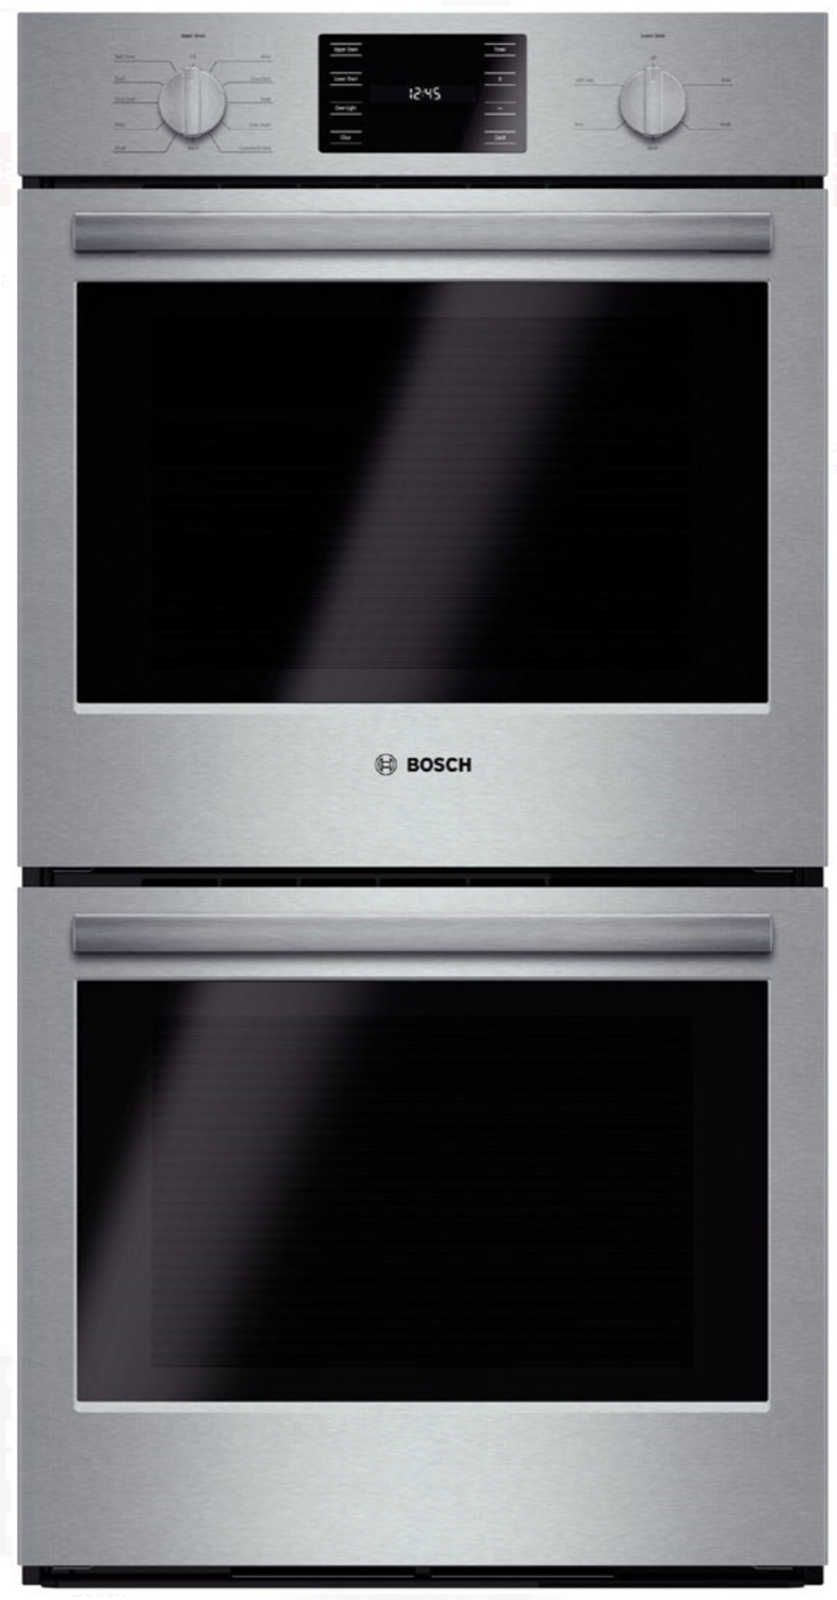 Primary image for Bosch HBN5651UC 500 Series 27 Inch Double Electric Wall Oven Stainless Steel